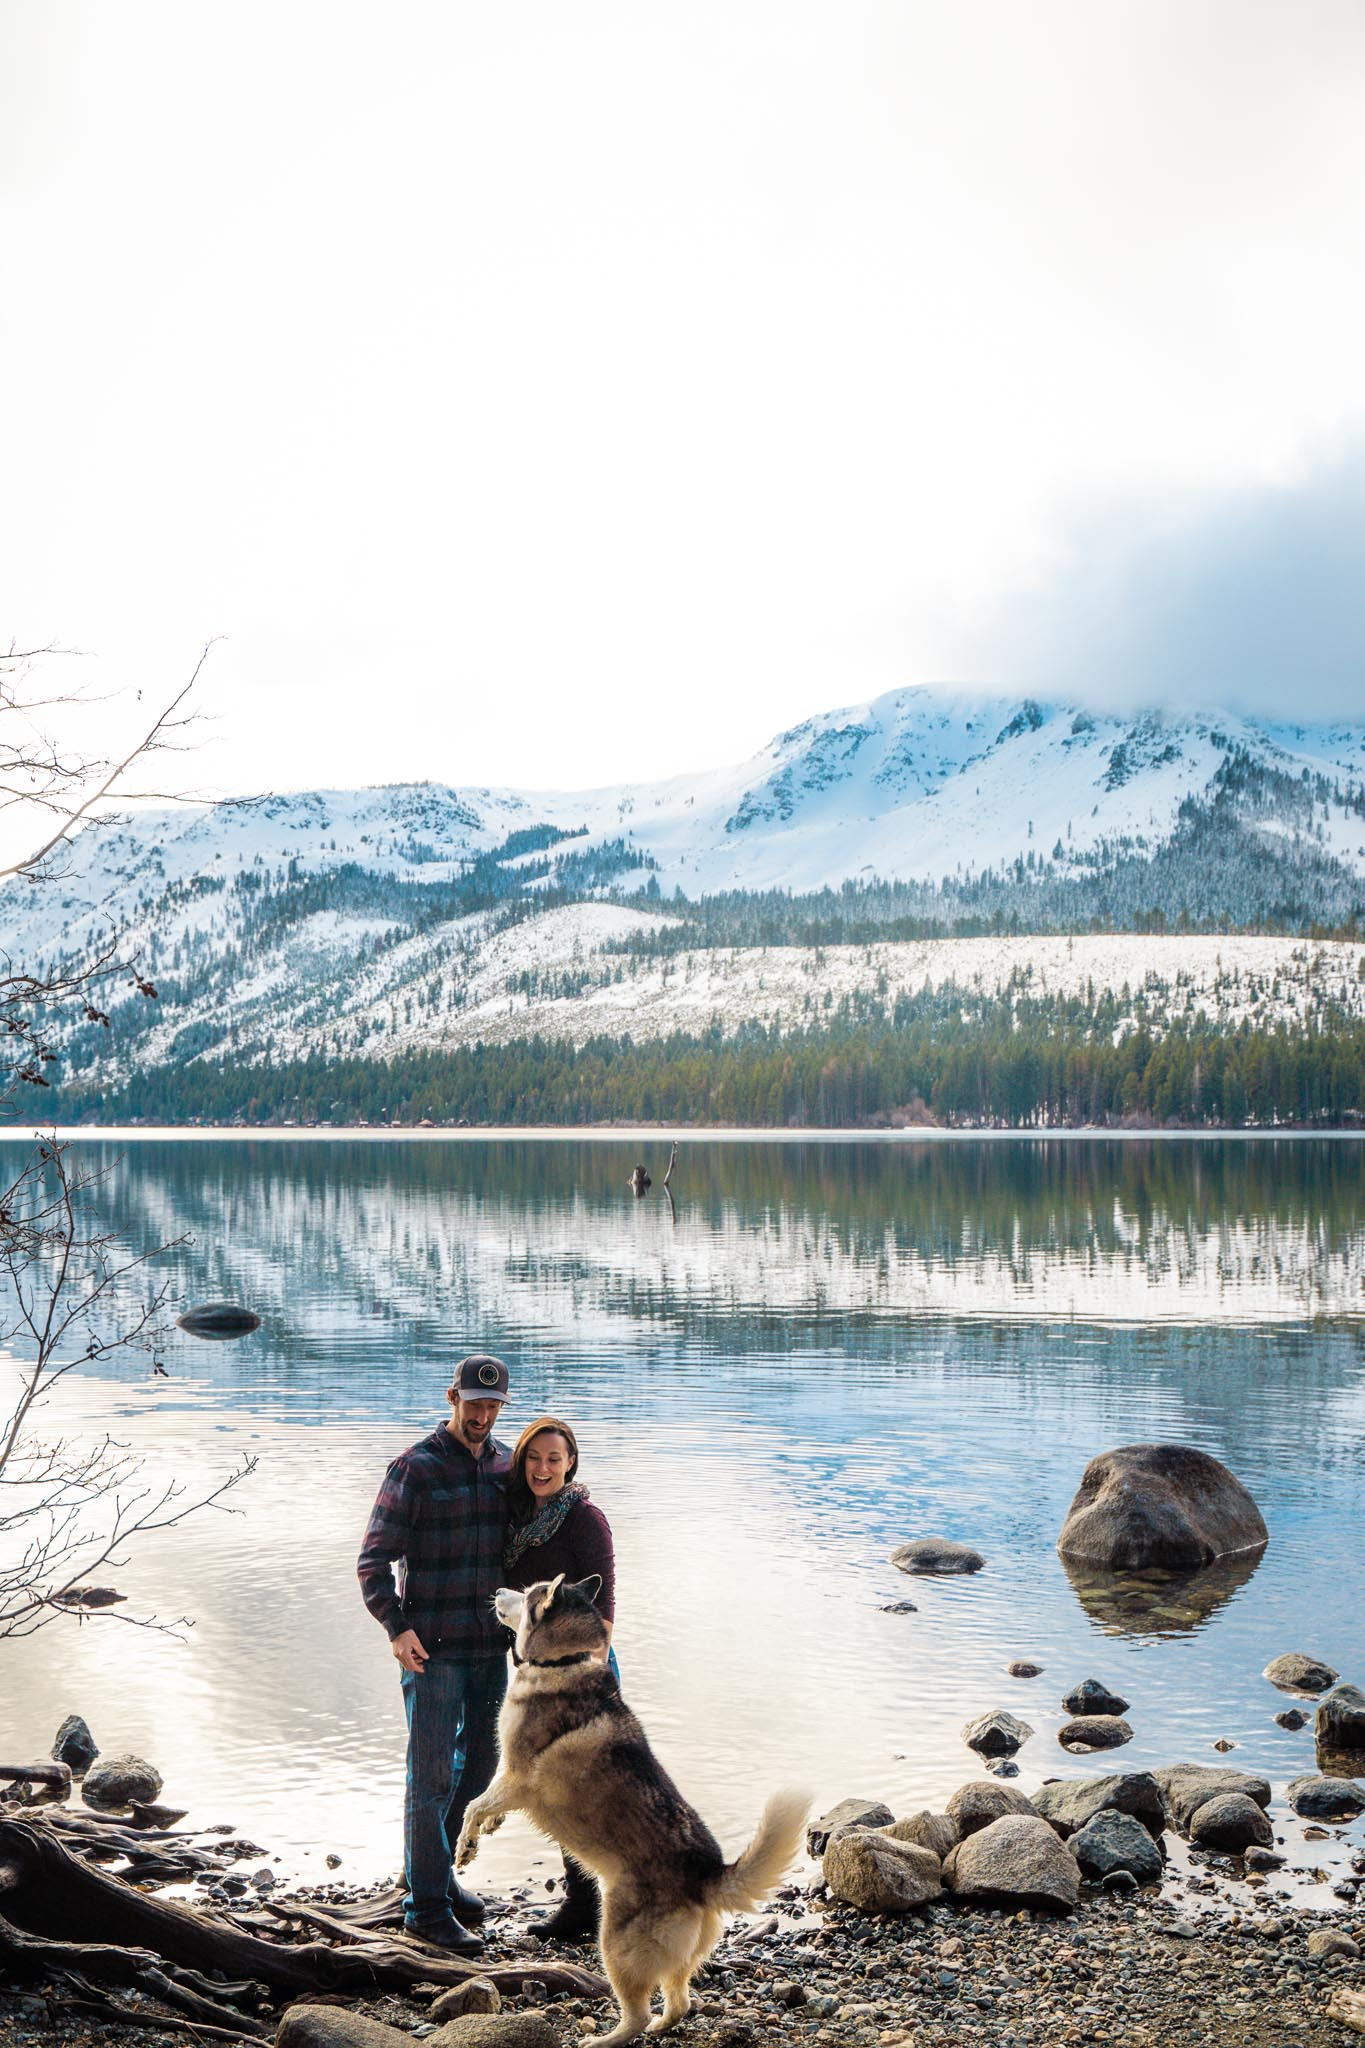 Sara and Branden's Lake Tahoe engagement photography session at Fallen Leaf Lake